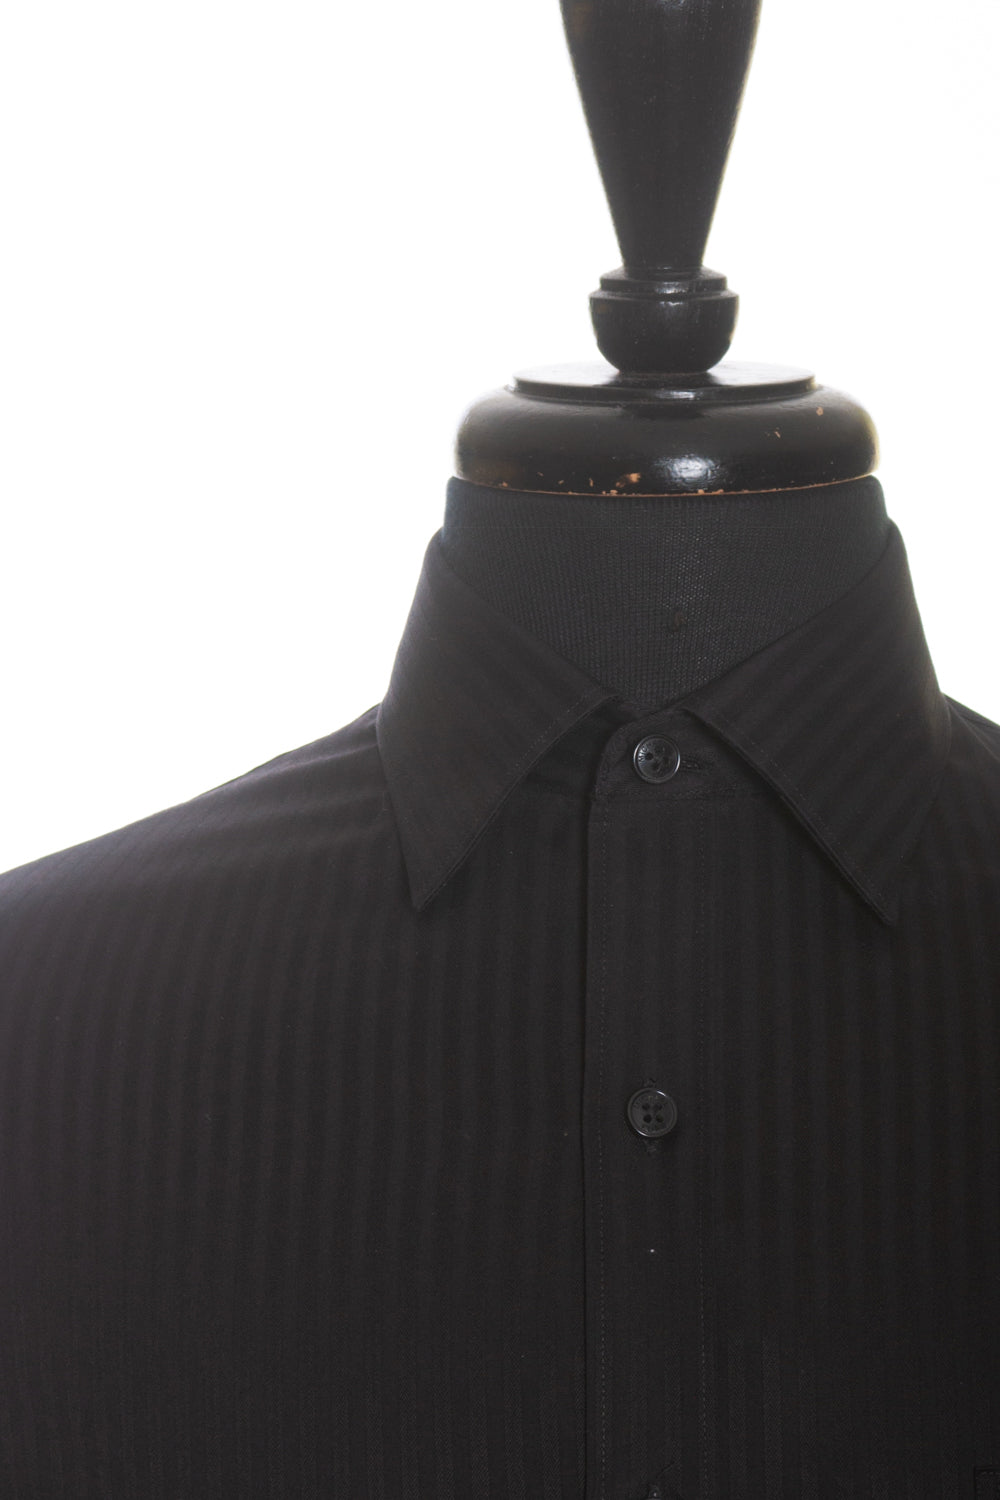 Michael Kors NWT Black Tonal Stripe Shirt for Luxmrkt.com Menswear Consignment Edmonton